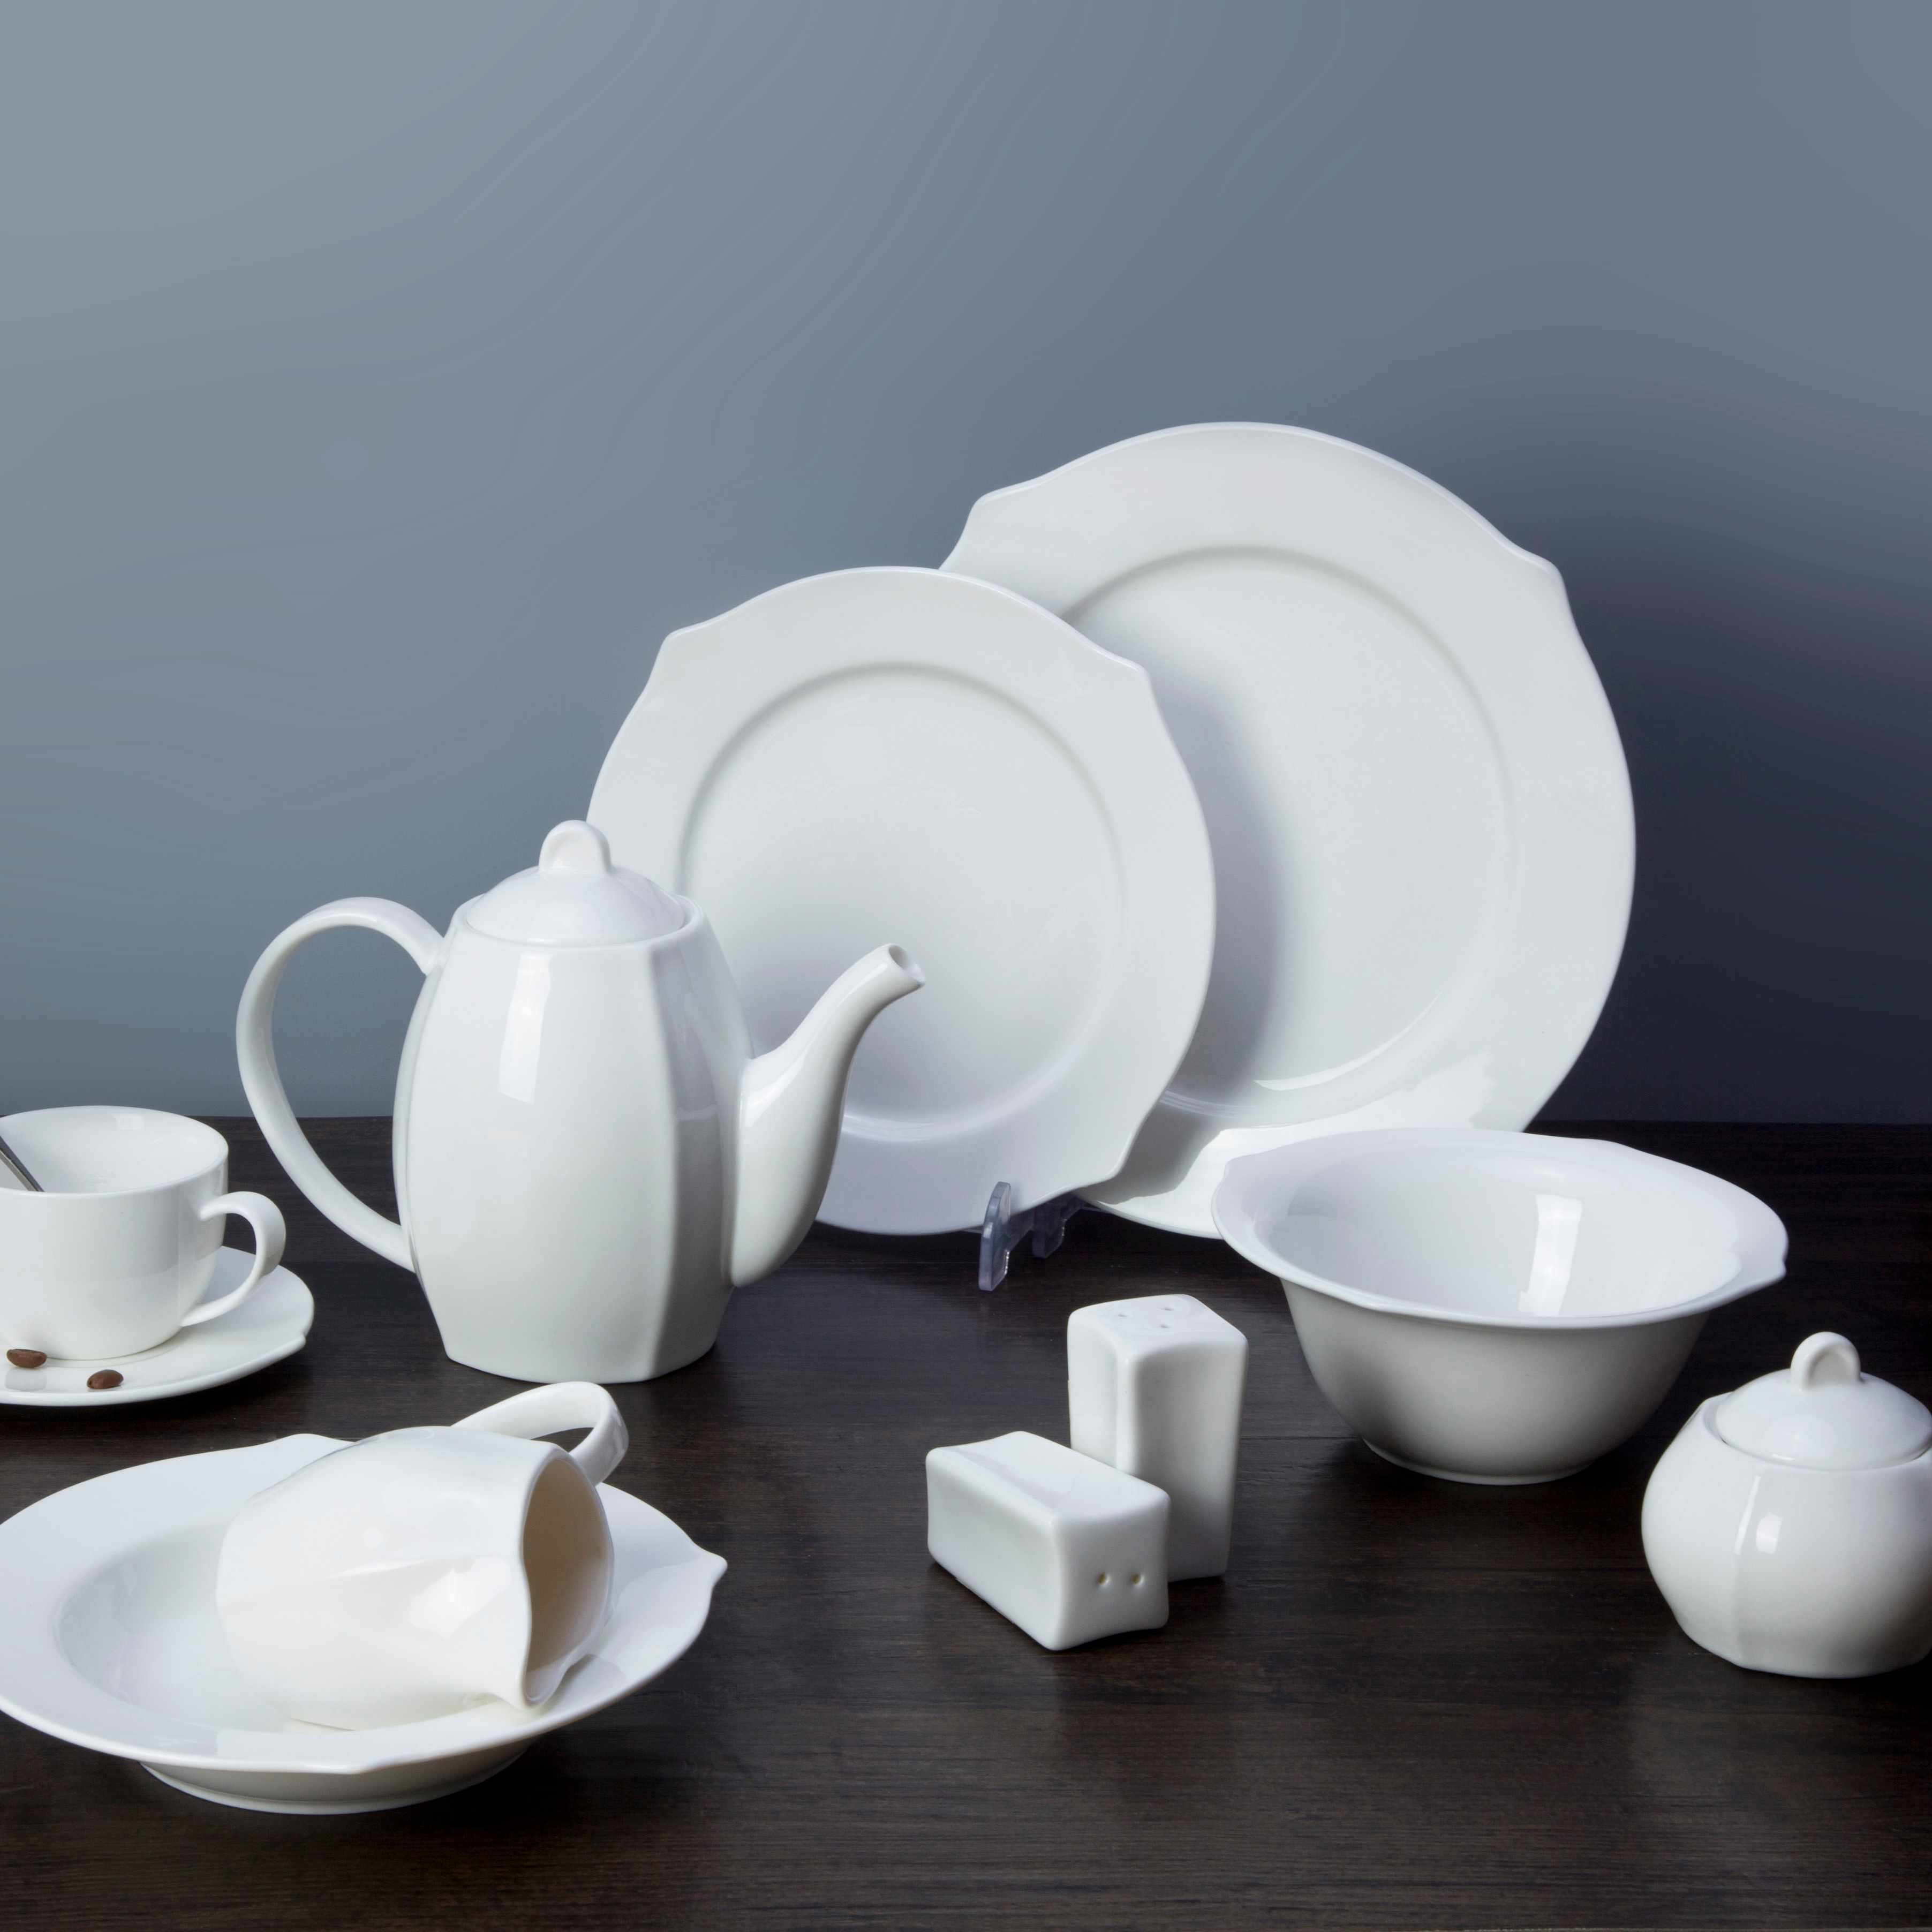 Two Eight White ceramic dinnerware set - XING KONG SERIES White Porcelain Dinner Set image11